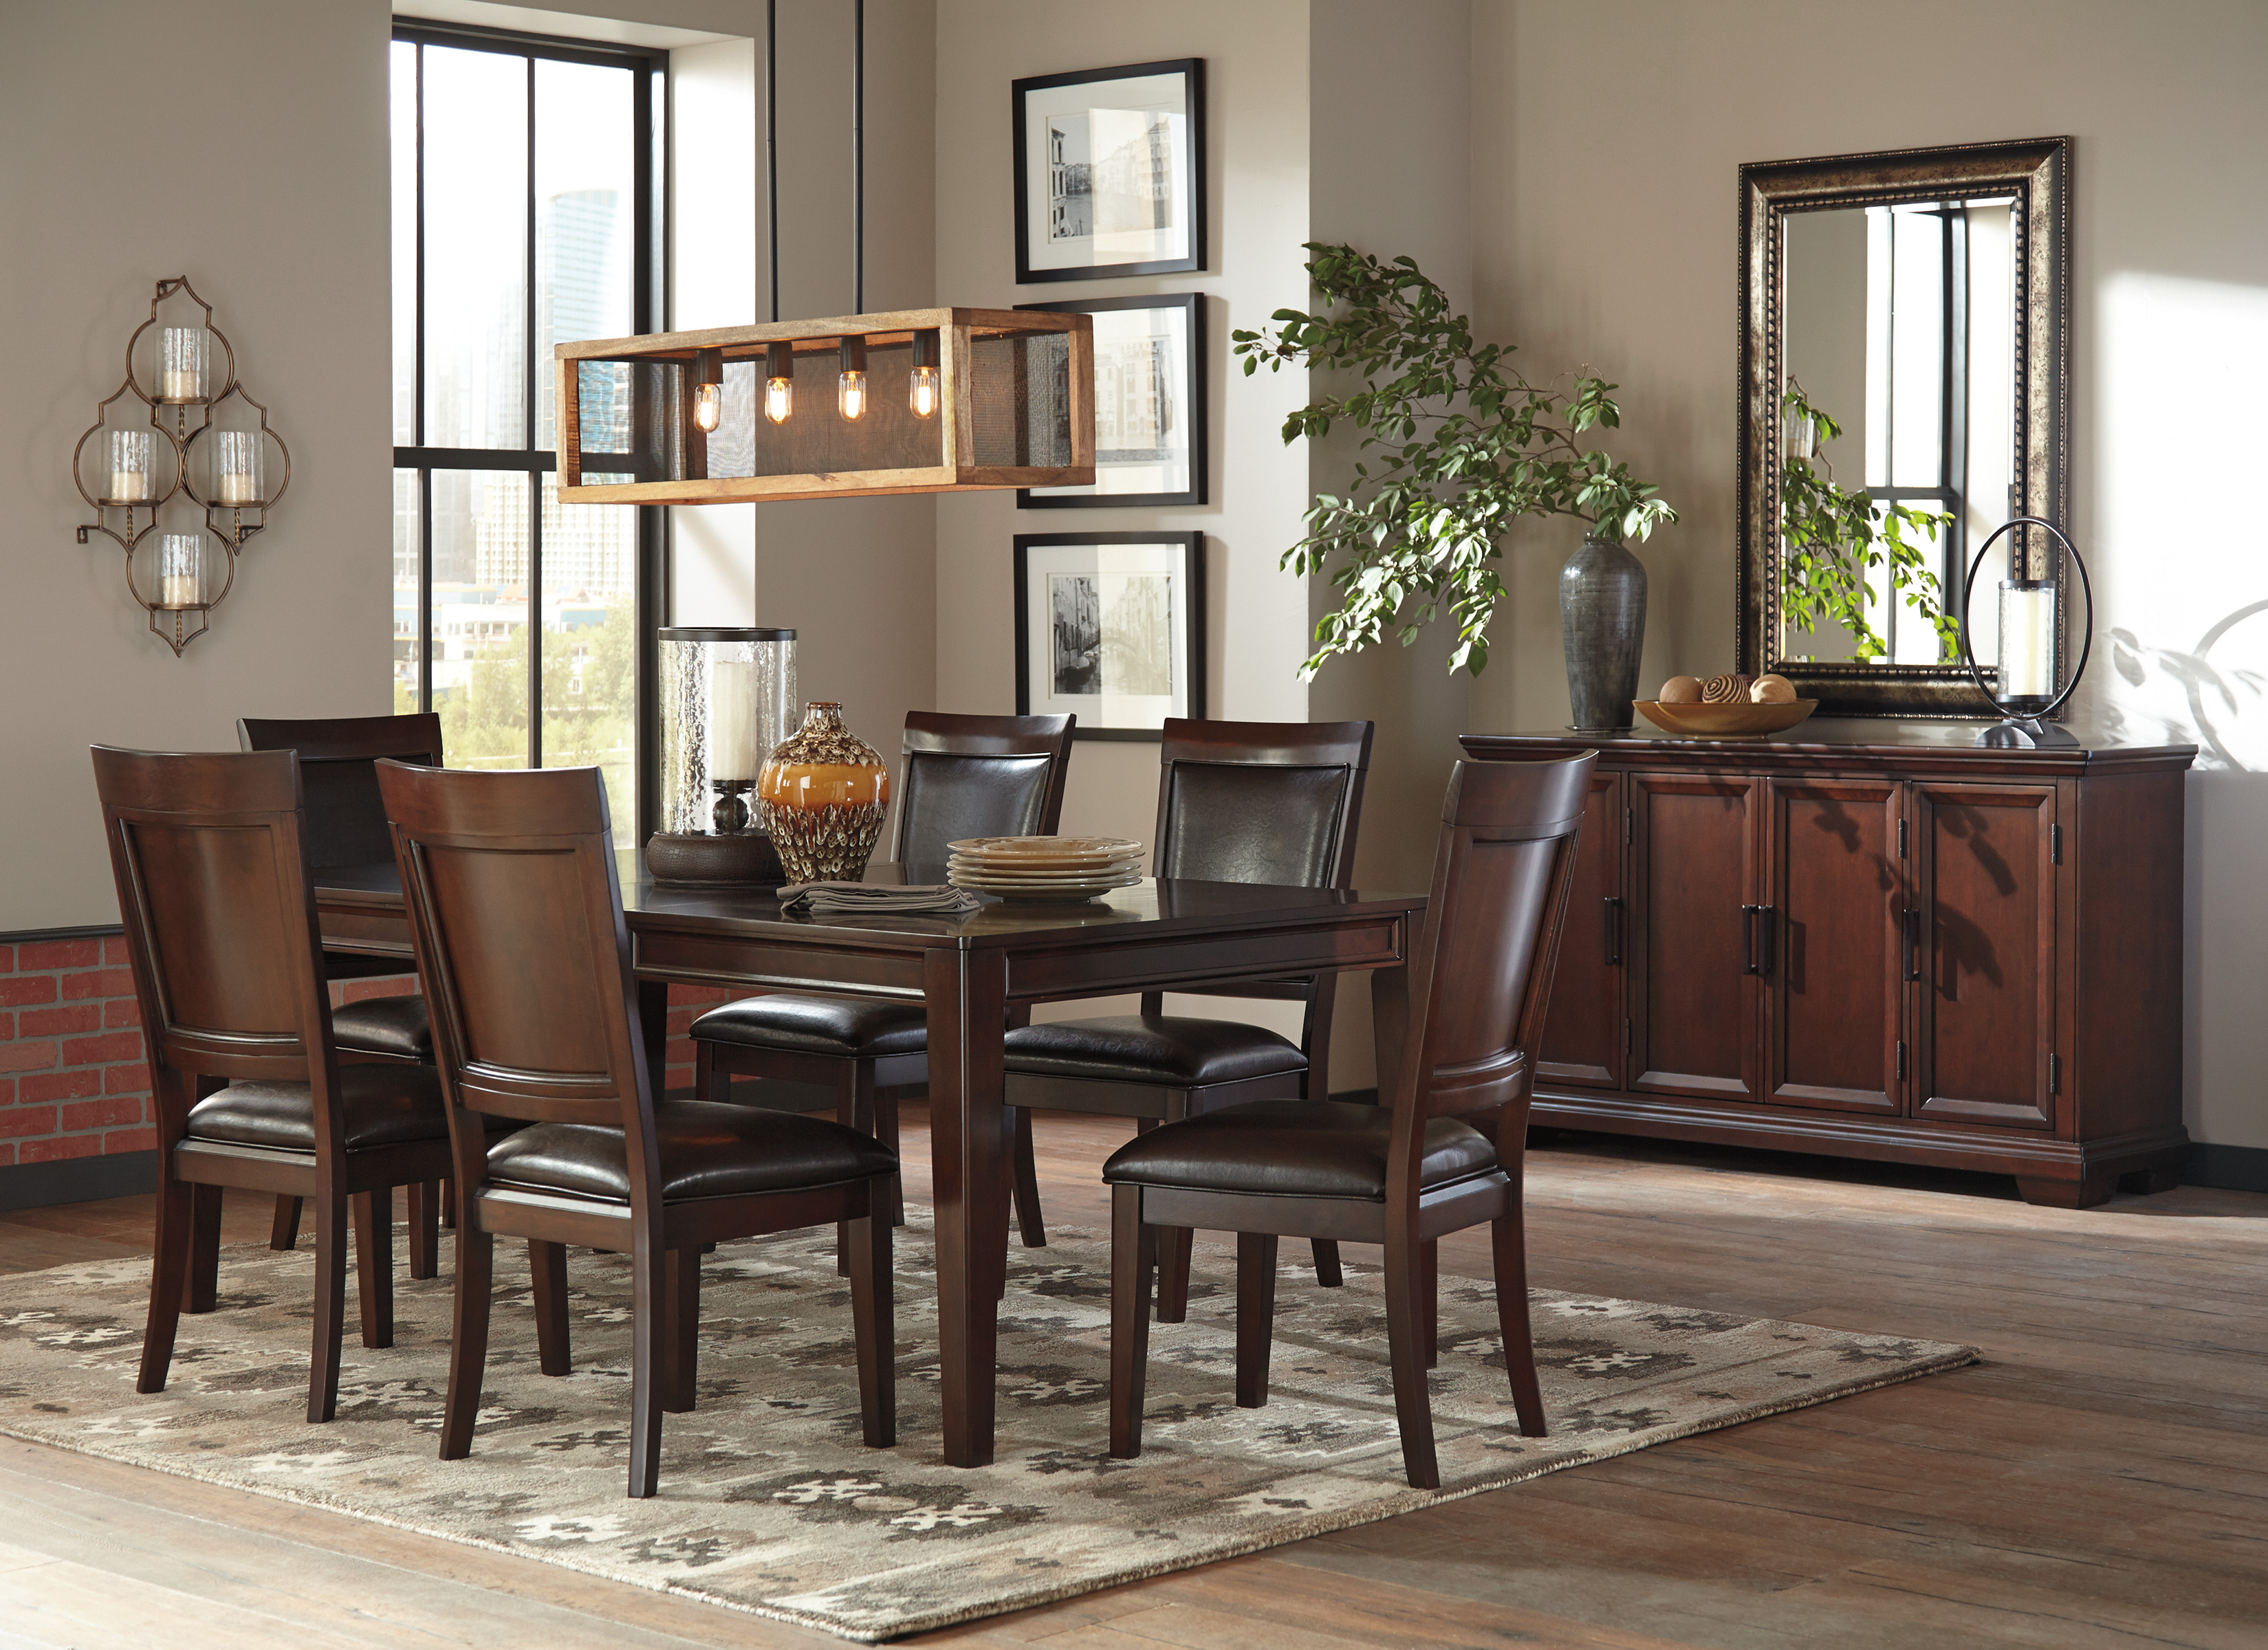 Ashley Shadyn 7 Piece Casual Dining Room Set In A Warm Brown Finish WRemovable 18 Extension